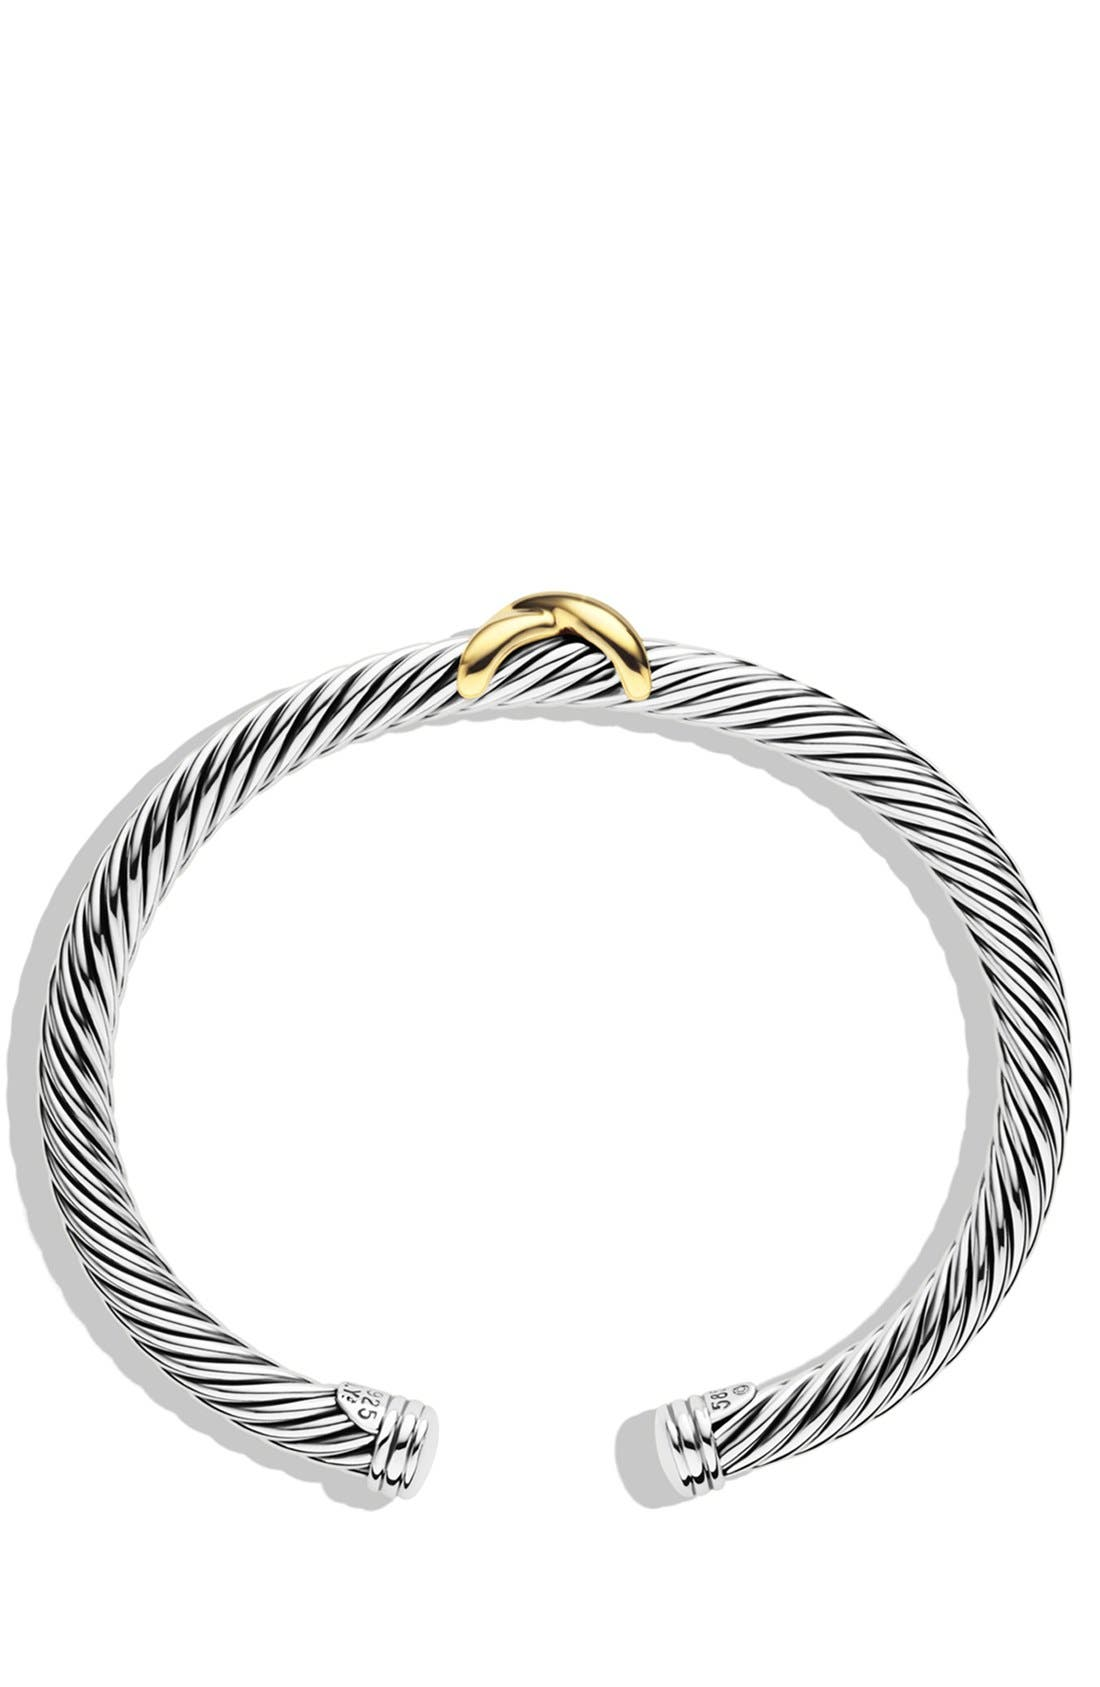 'X' Bracelet with Gold,                             Alternate thumbnail 4, color,                             TWO TONE